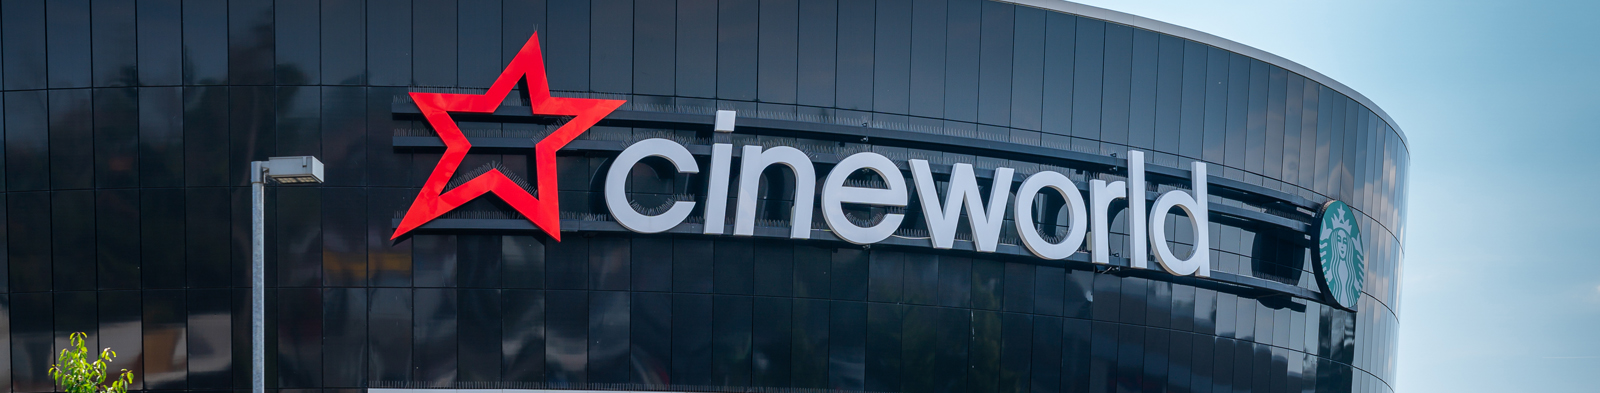 Front of a Cineworld cinema